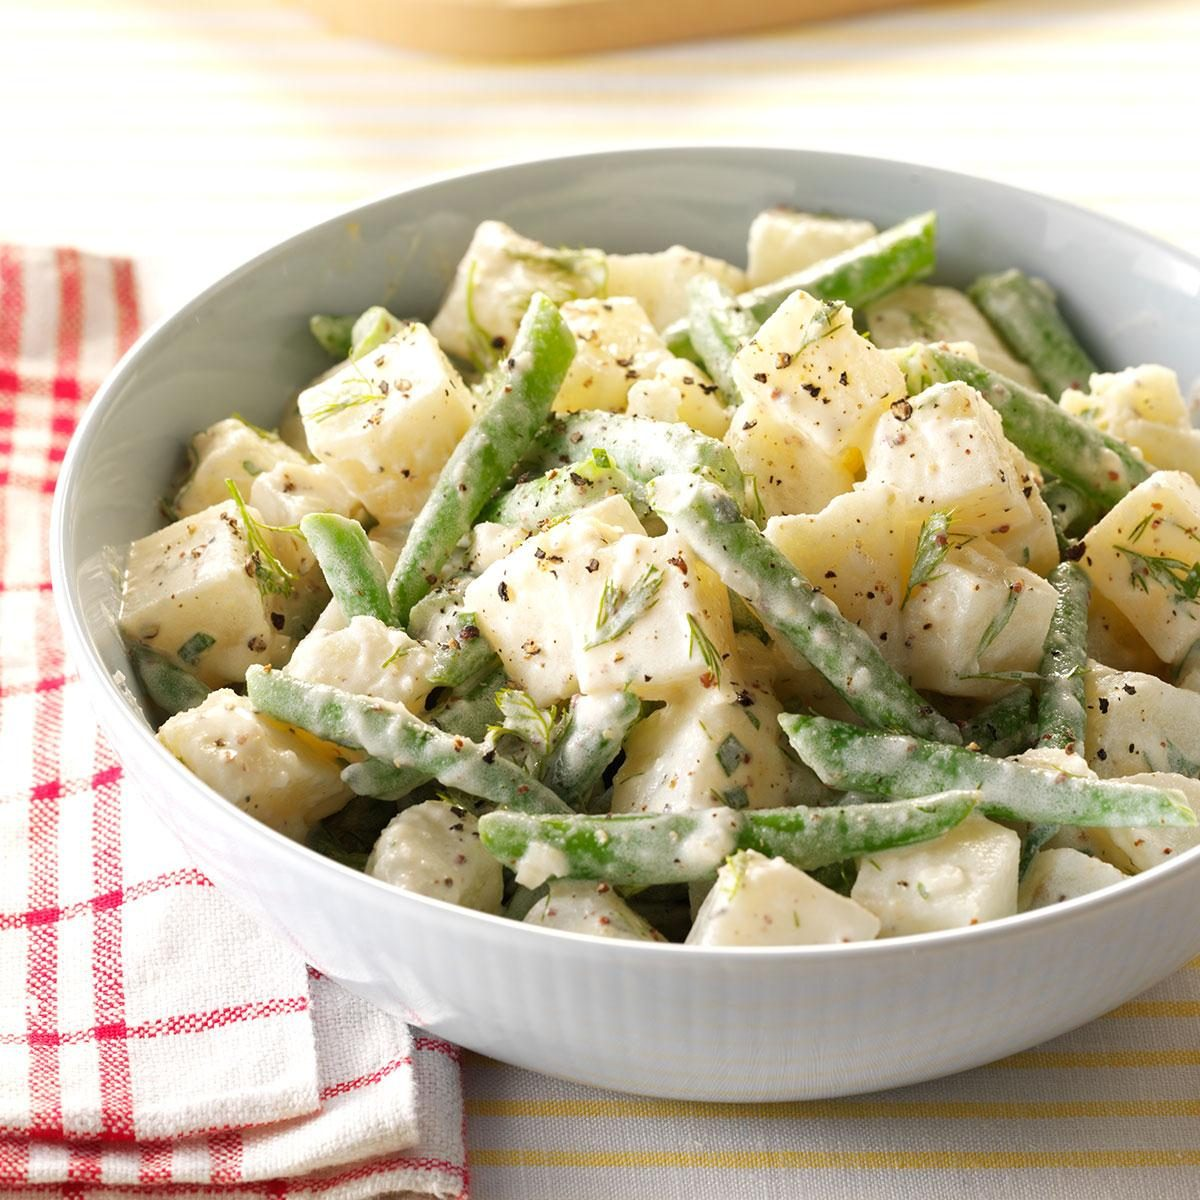 New Jersey: Potato-Bean Salad with Herb Dressing